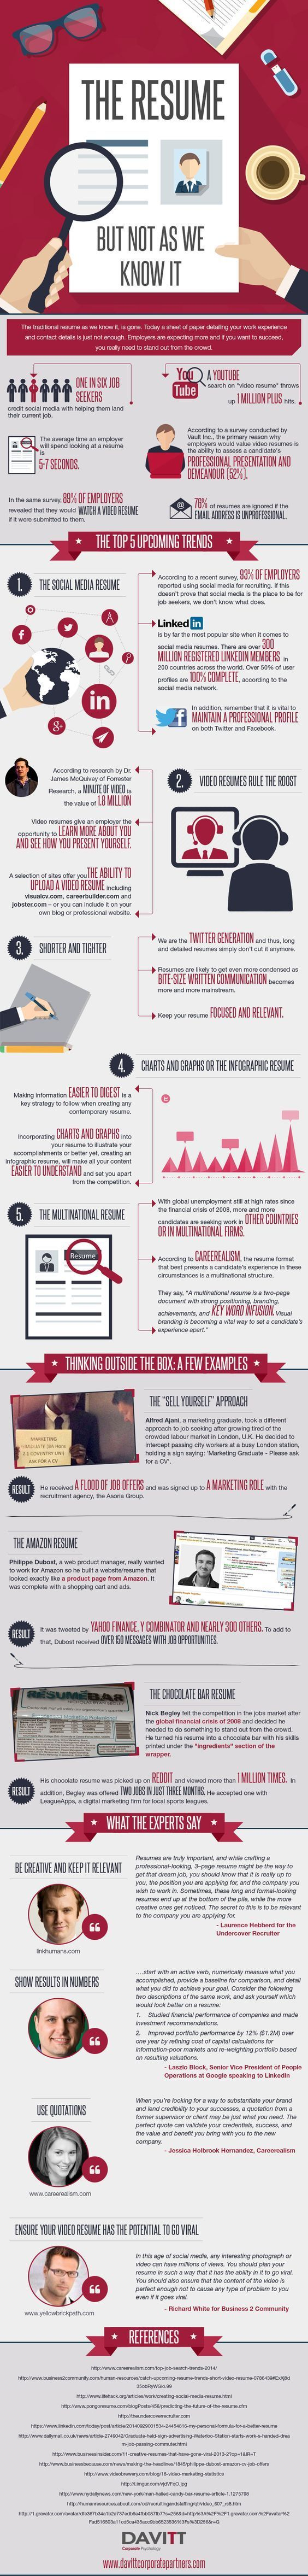 3 Types Of Resumes Inspiration Handy Infographic On Things To Think About When Deciding What Type .